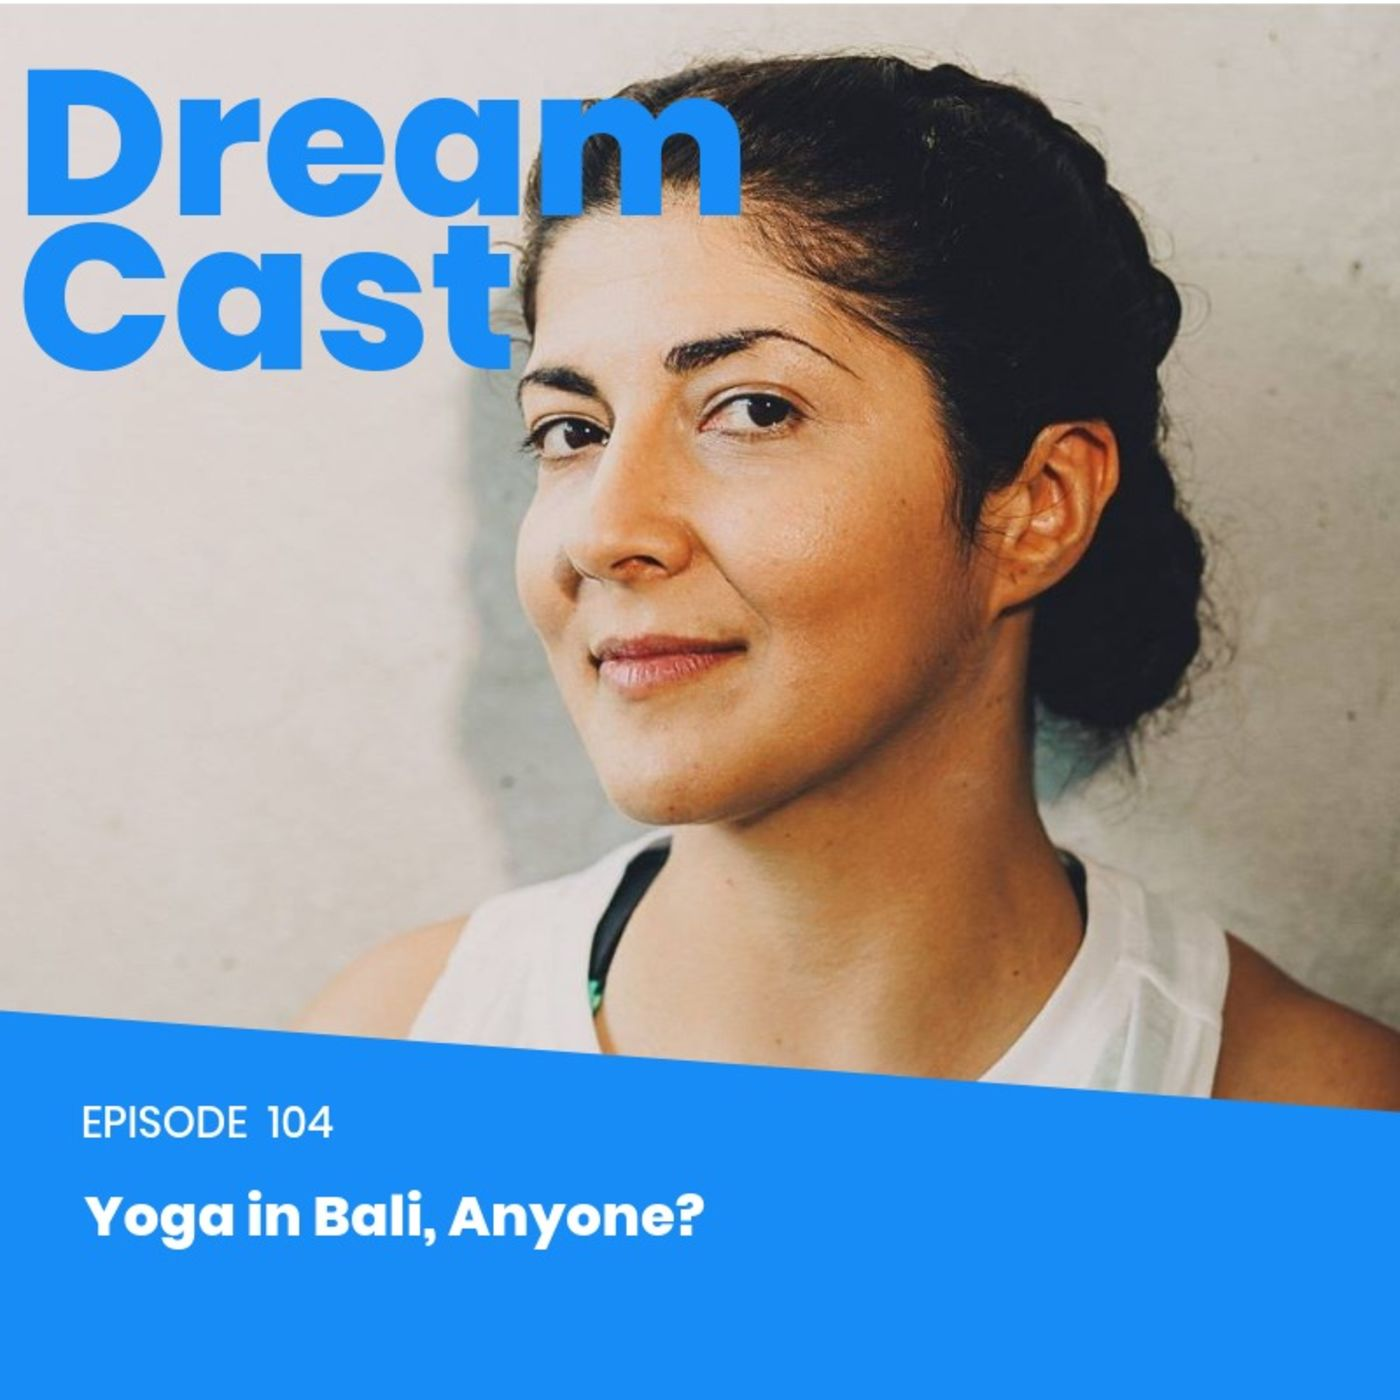 Episode 104 - Yoga in Bali, Anyone?